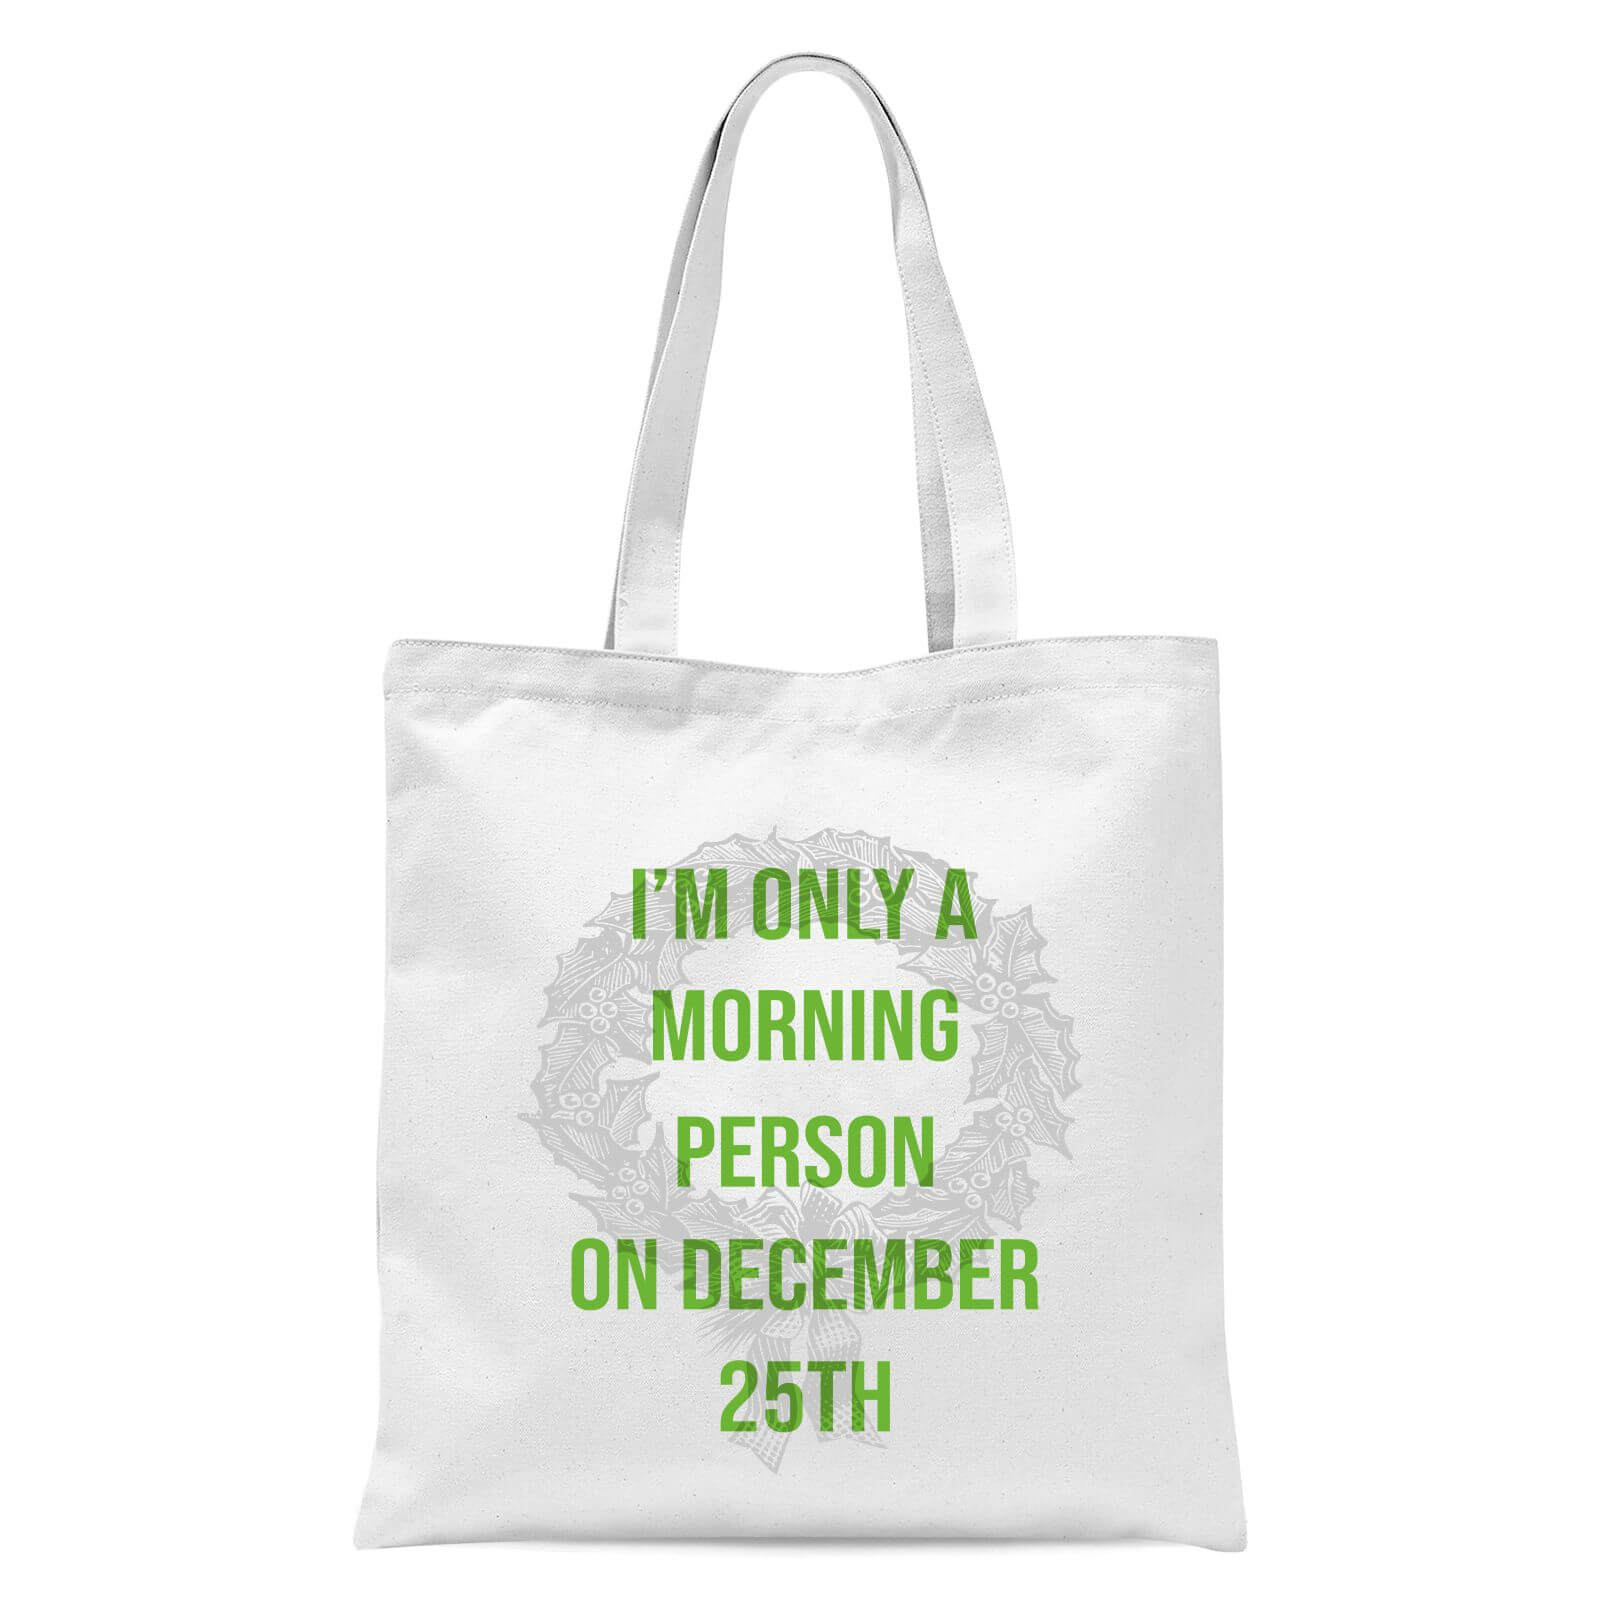 cd0a2ba7a7f7 Im Only A Morning Person On December 25th Tote Bag - White